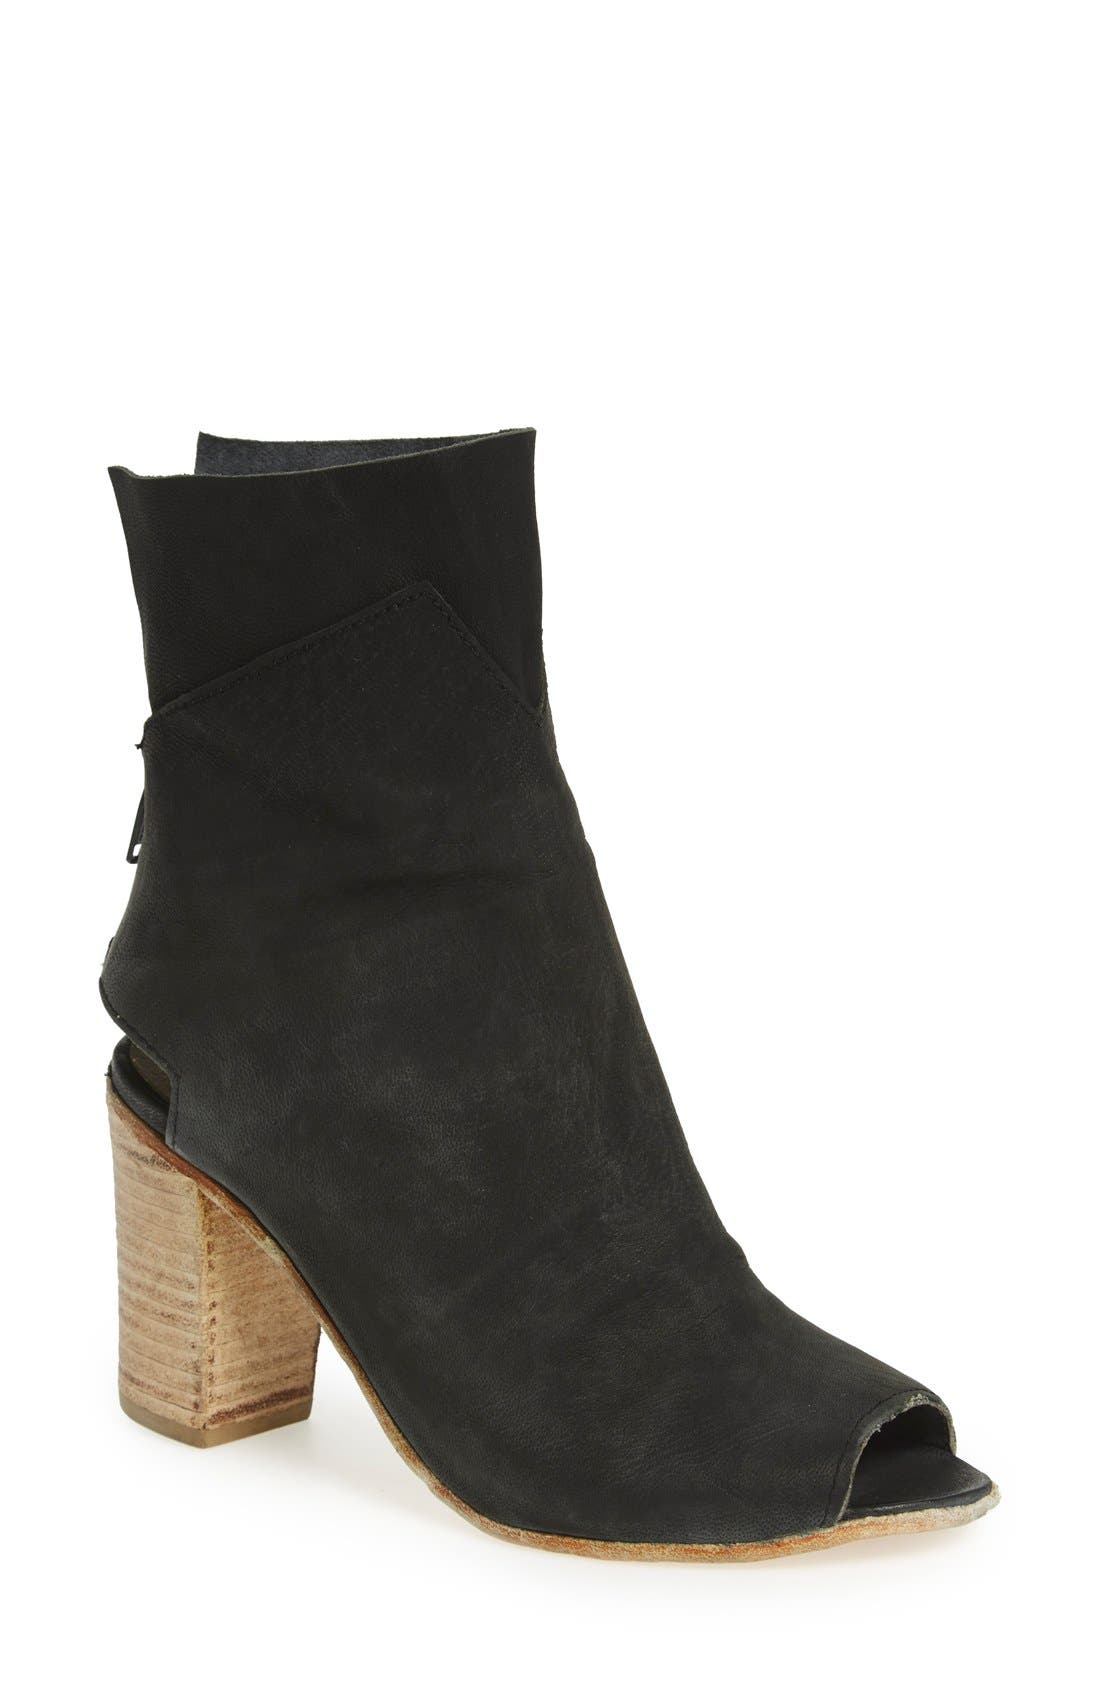 'Golden Road' Open Toe Bootie,                         Main,                         color, 001